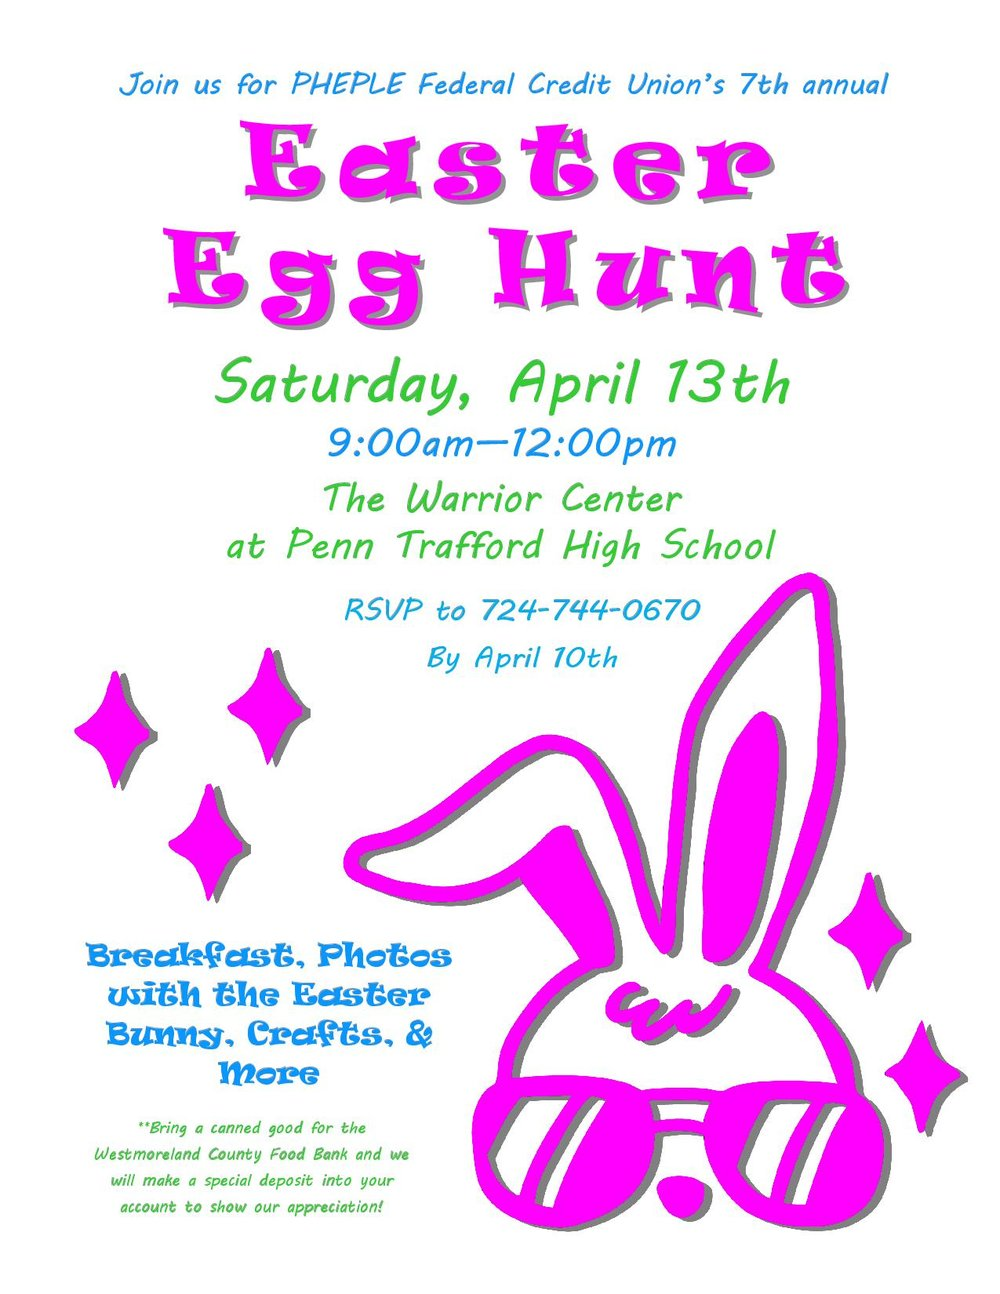 Easter Egg Hunt Flier Saturday April 13th 9:00am-12:00pm The Warrior Center at Penn Trafford High School RSVP to 724-744-0670 by April 10th